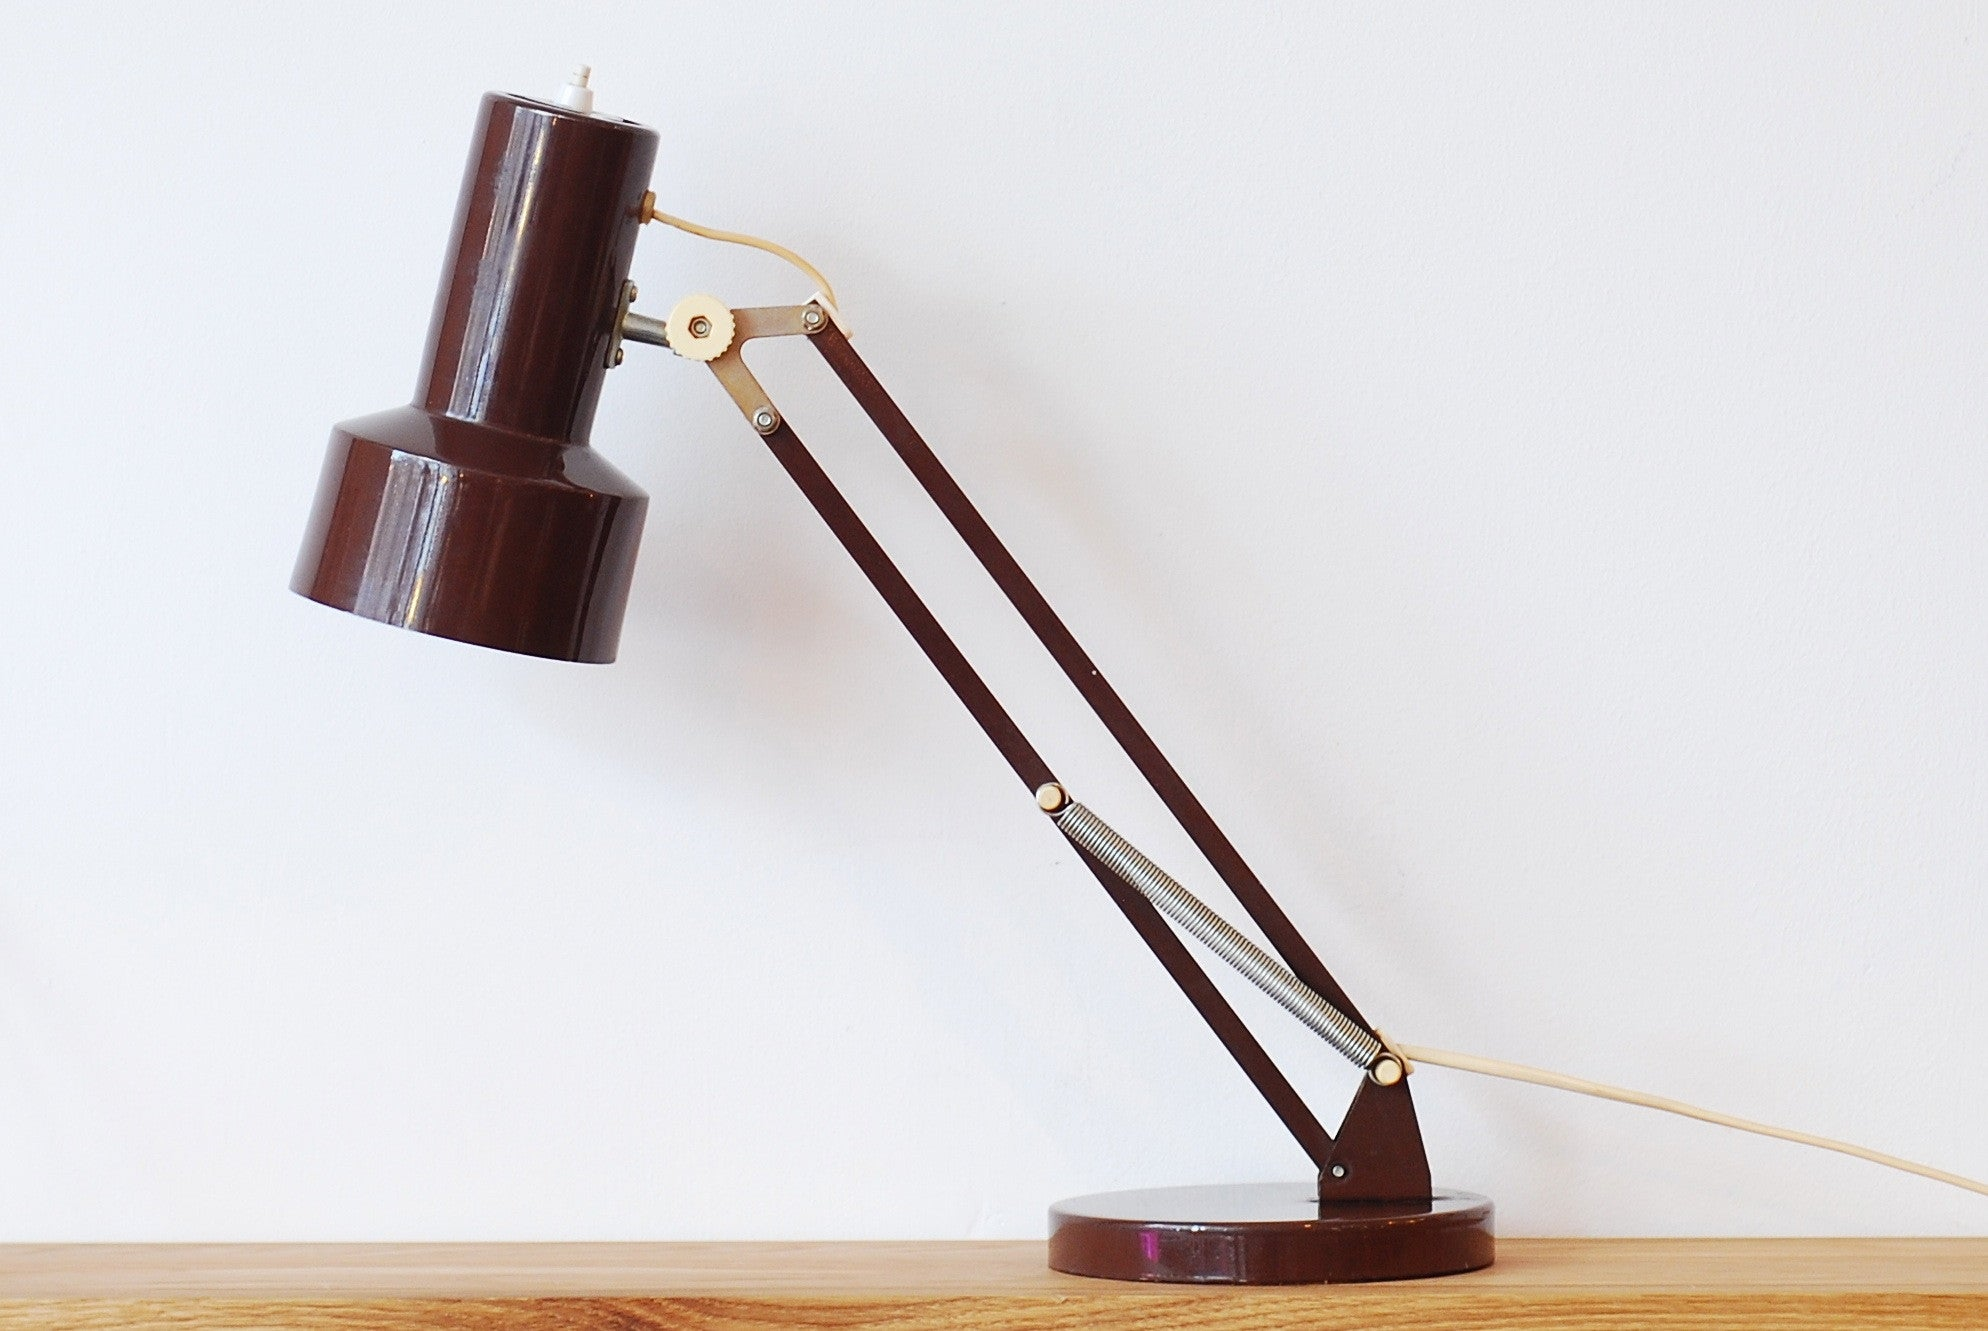 Desk lamp by Lyskaer Belysning